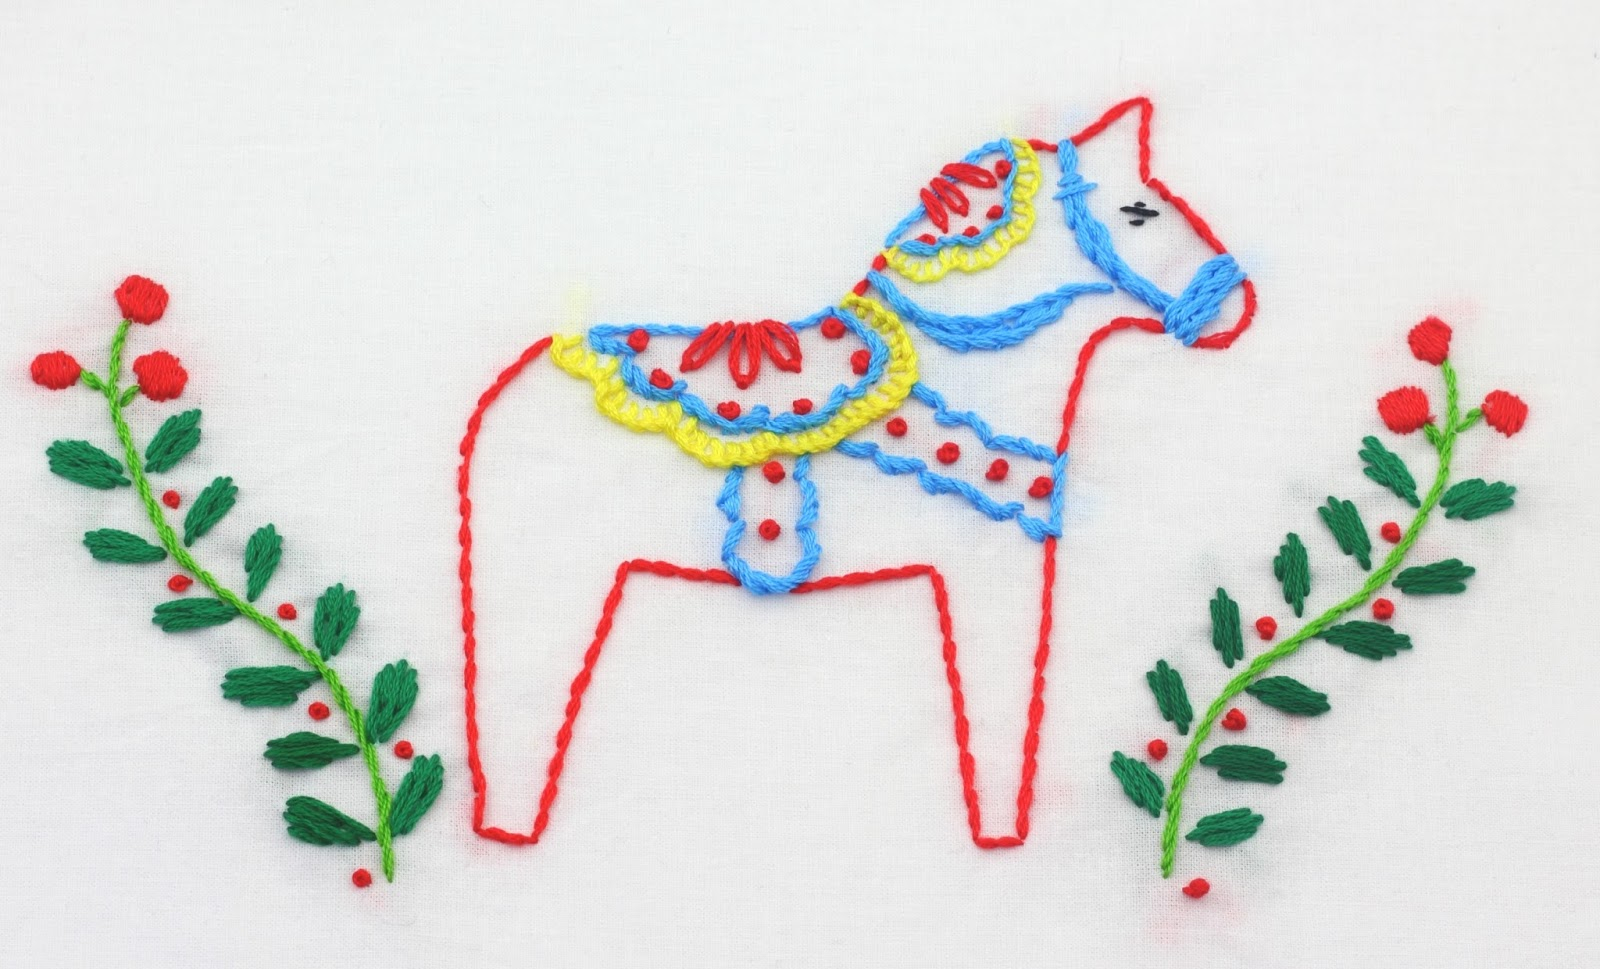 Scandinavian Embroidery Patterns Big B Dala Horse Embroidery